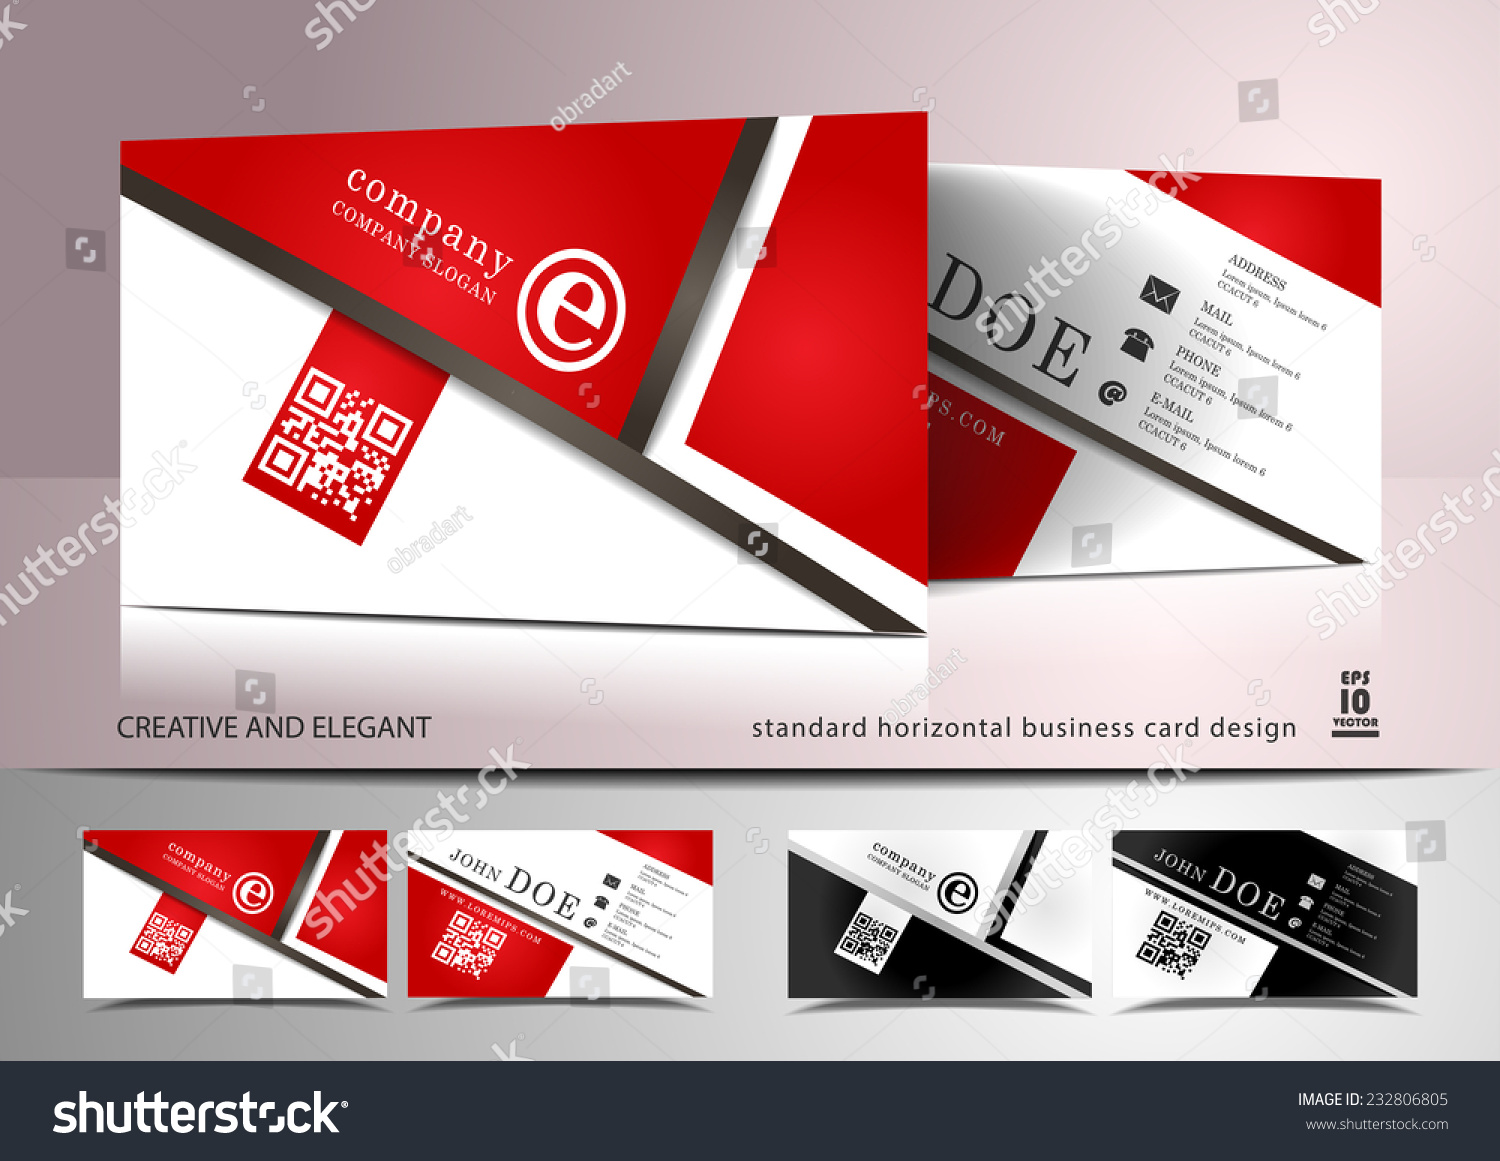 Creative Business Card Design In Red And White